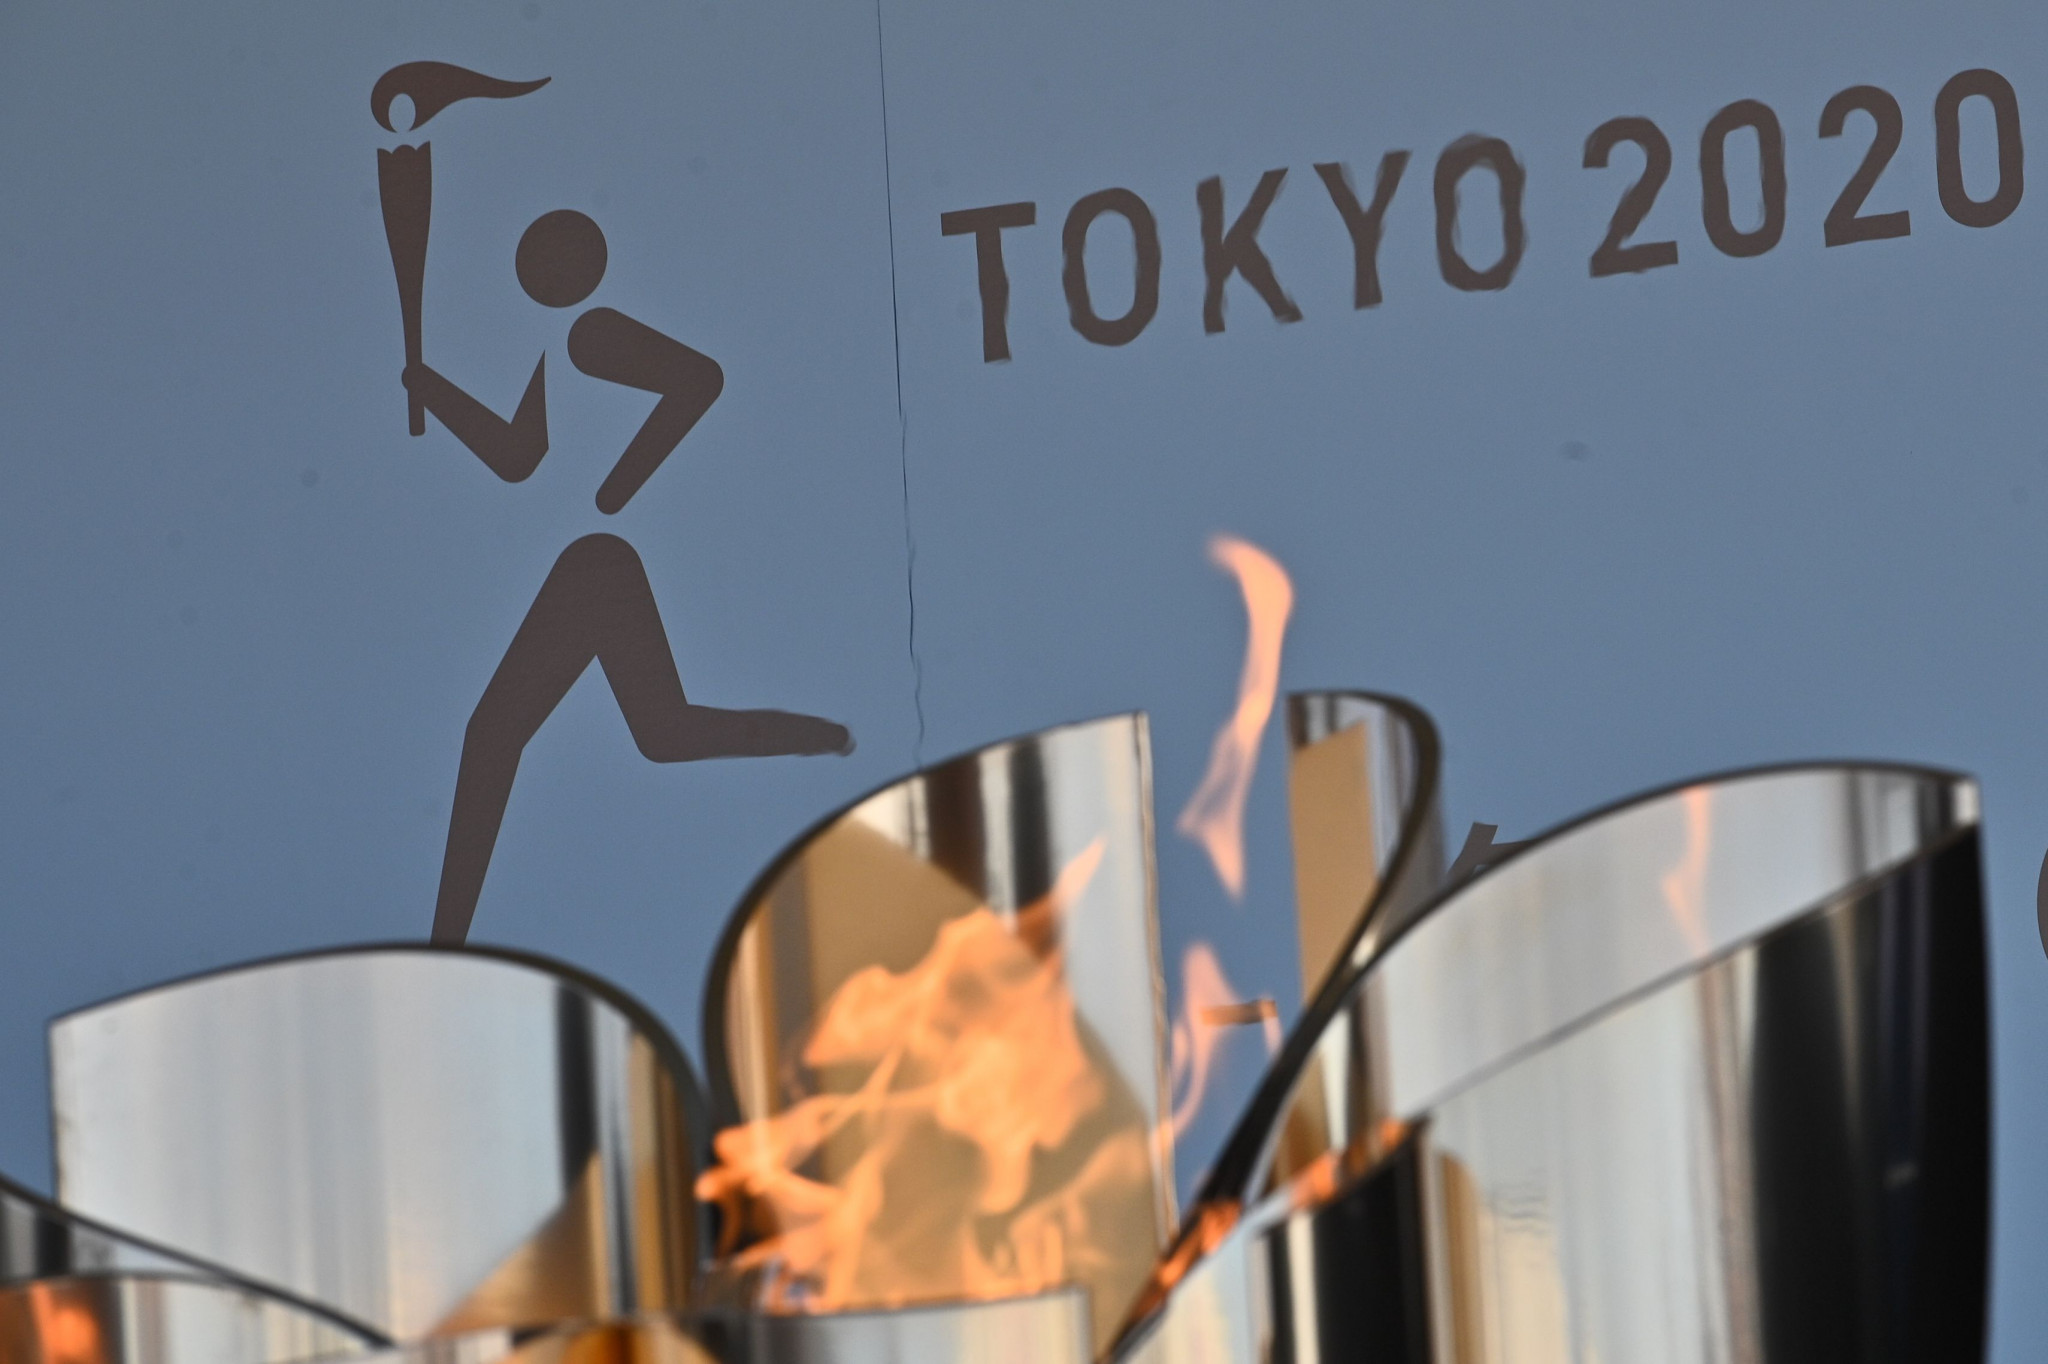 Tokyo 2020 Torch Relay may be forced to divert away from public roads, say organisers